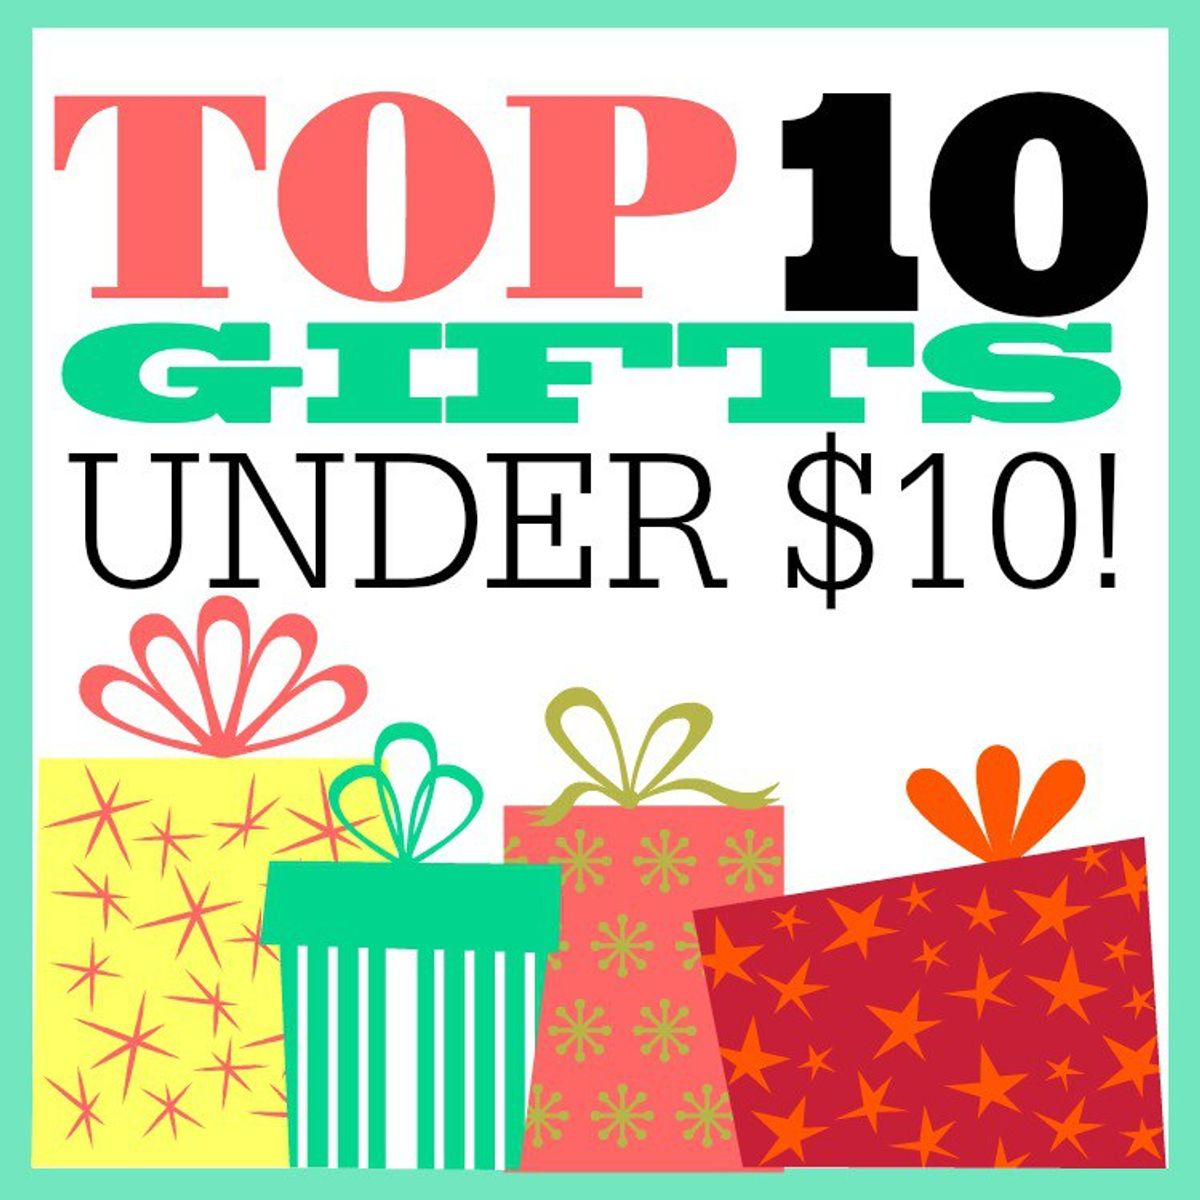 10 Affordable Gift Ideas